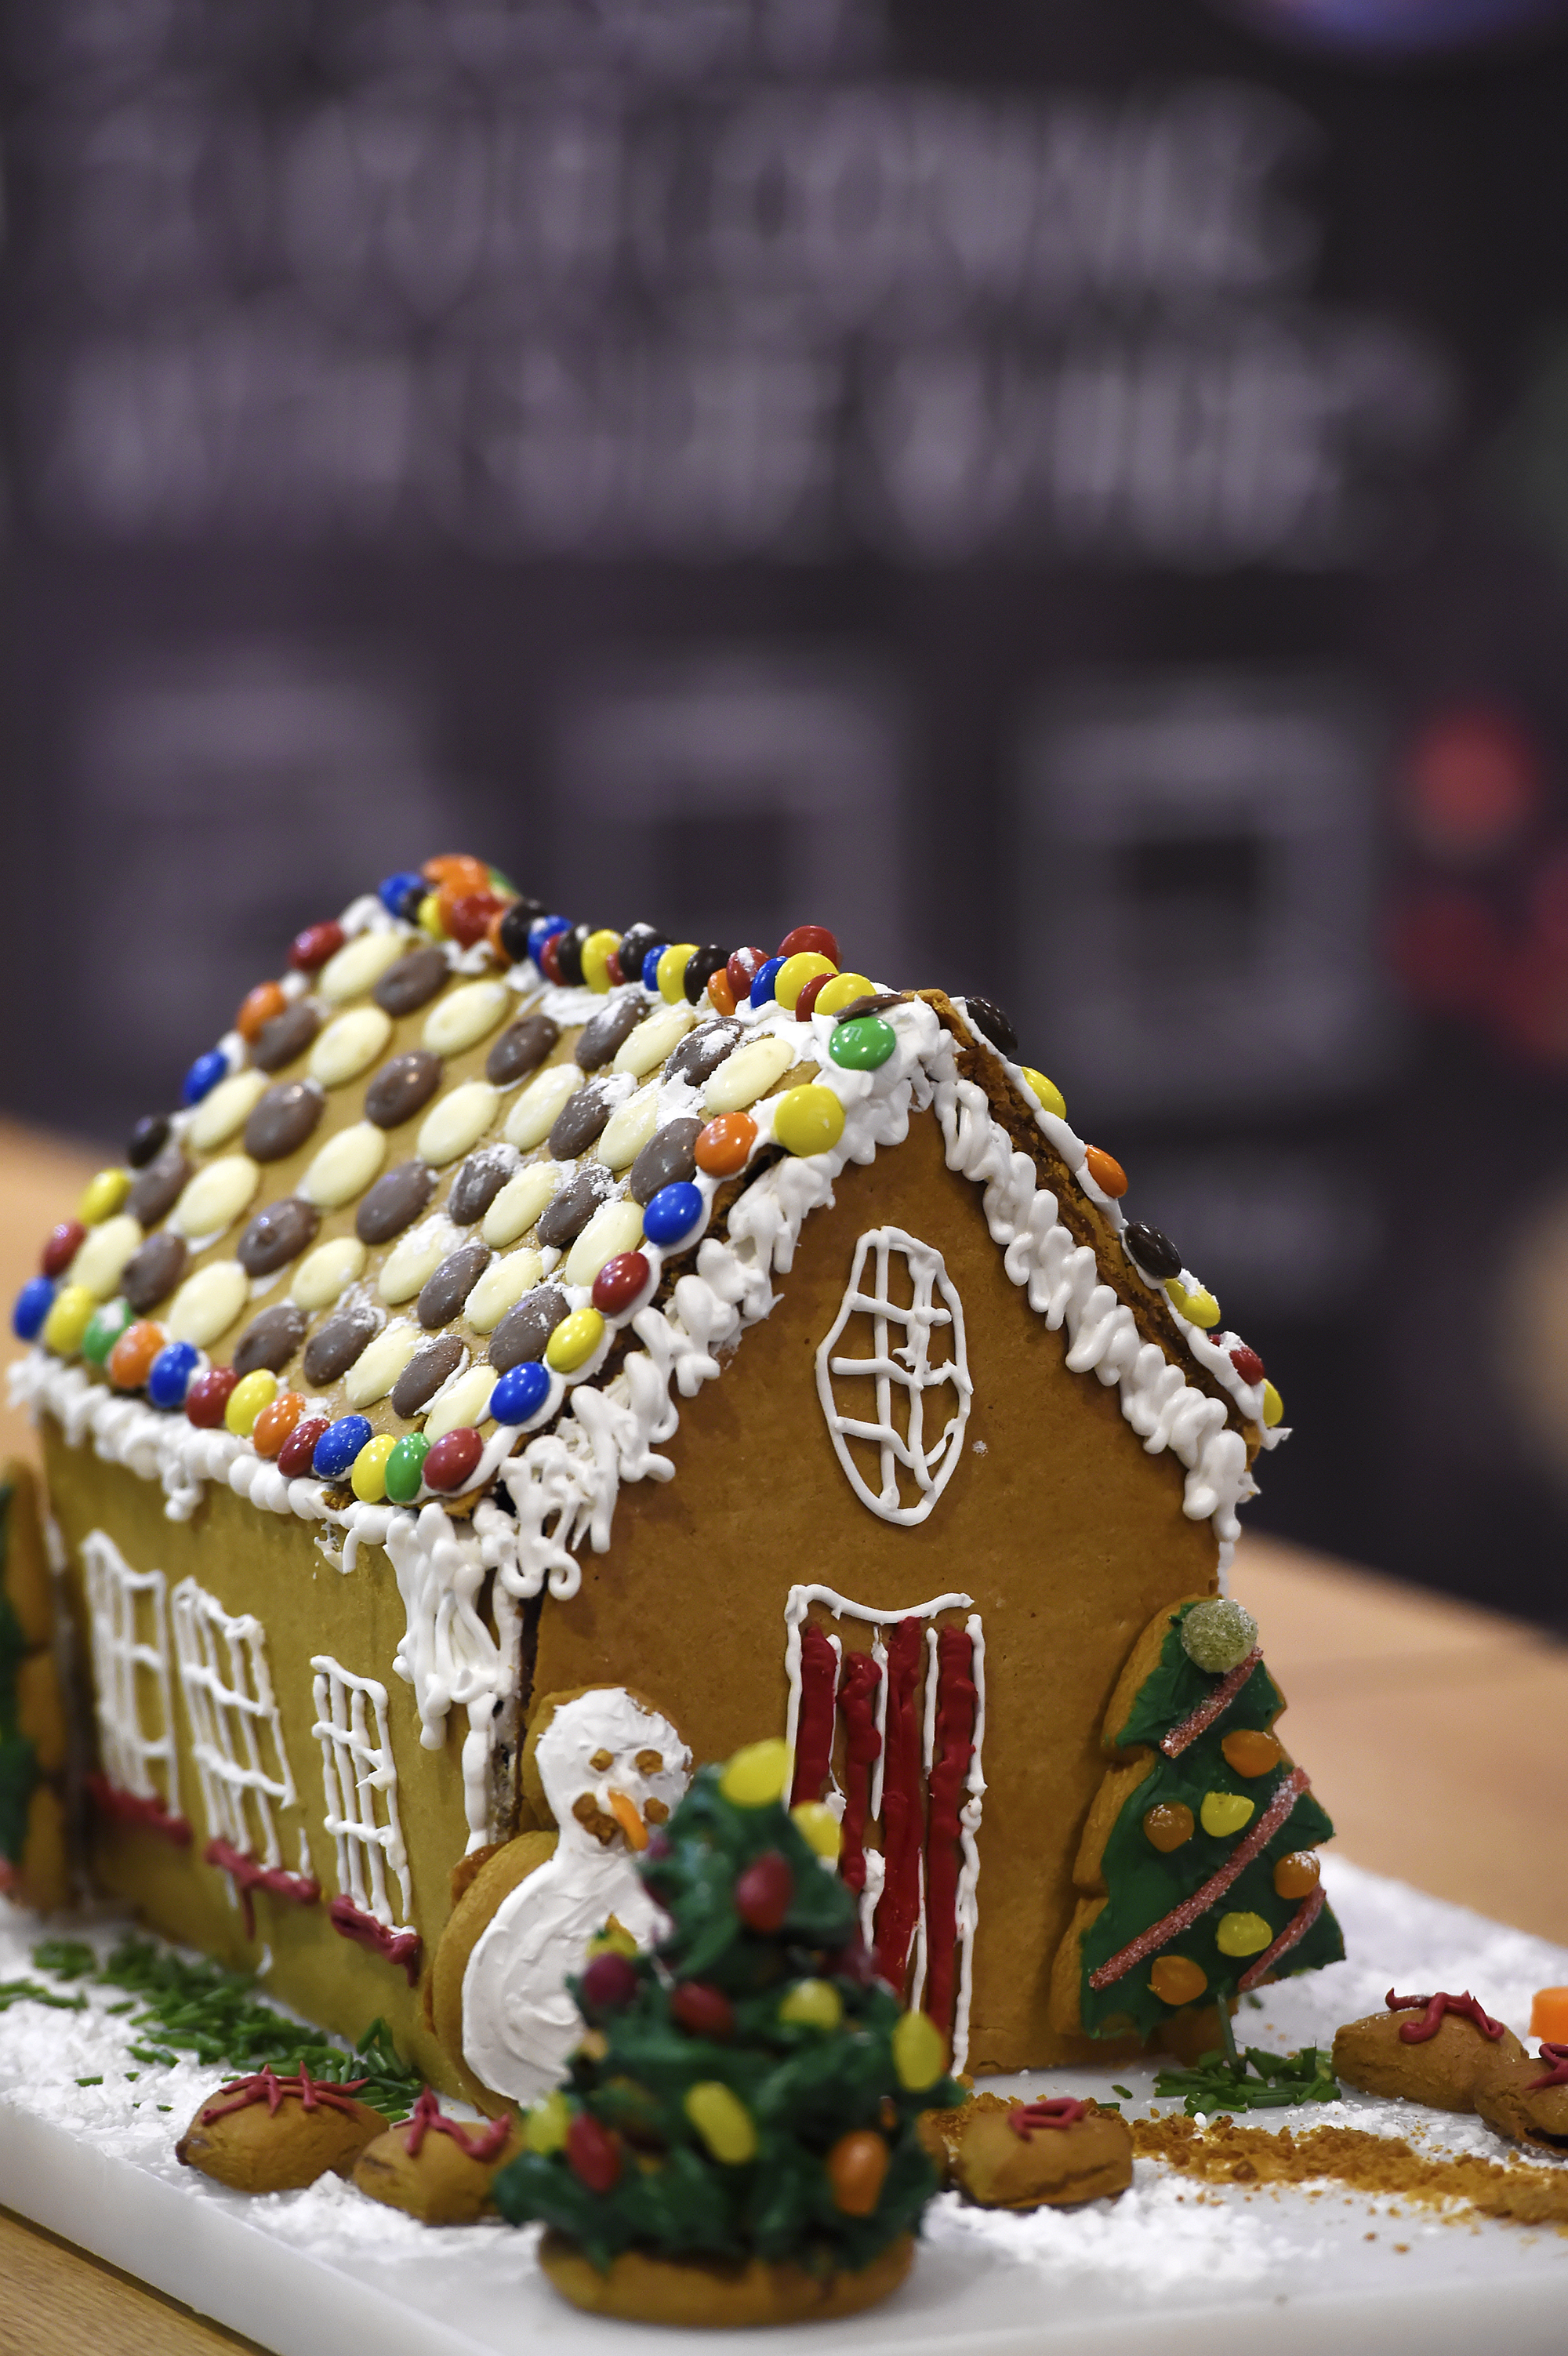 the final result - our neff gingerbread house